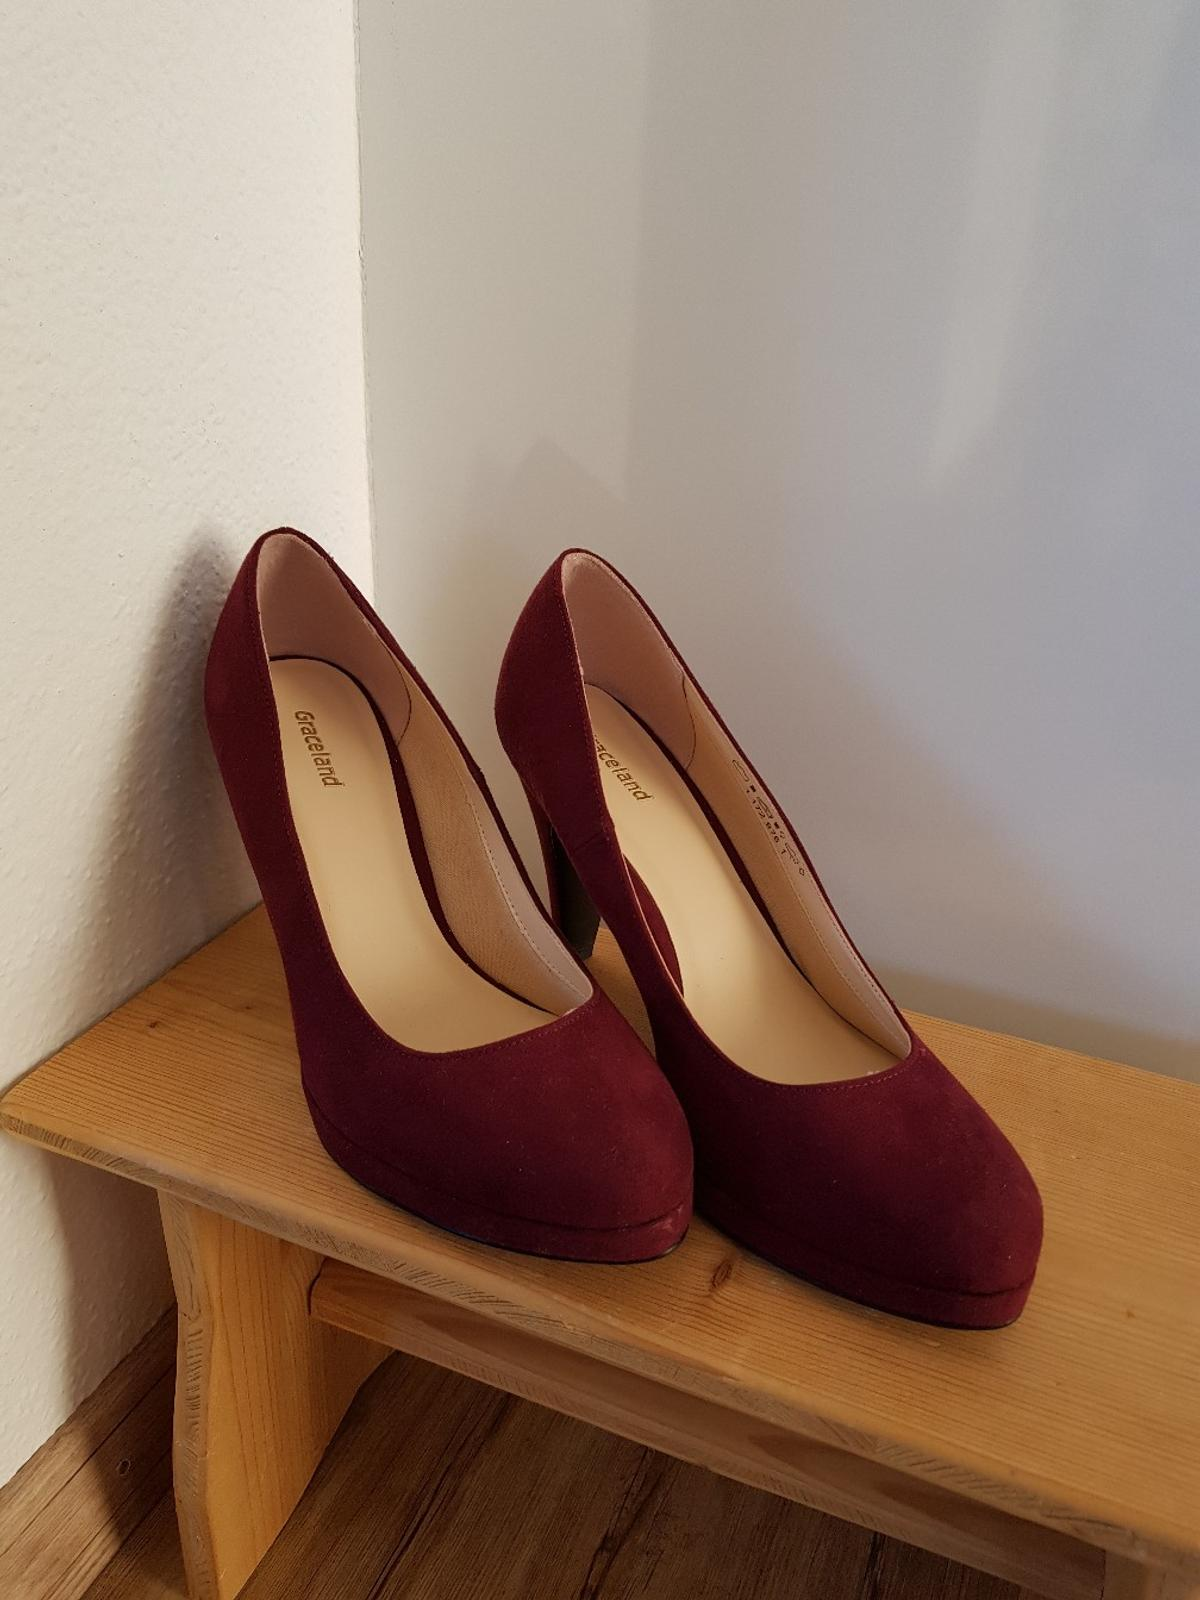 Pumps weinrot bordeaux High Heels NEU